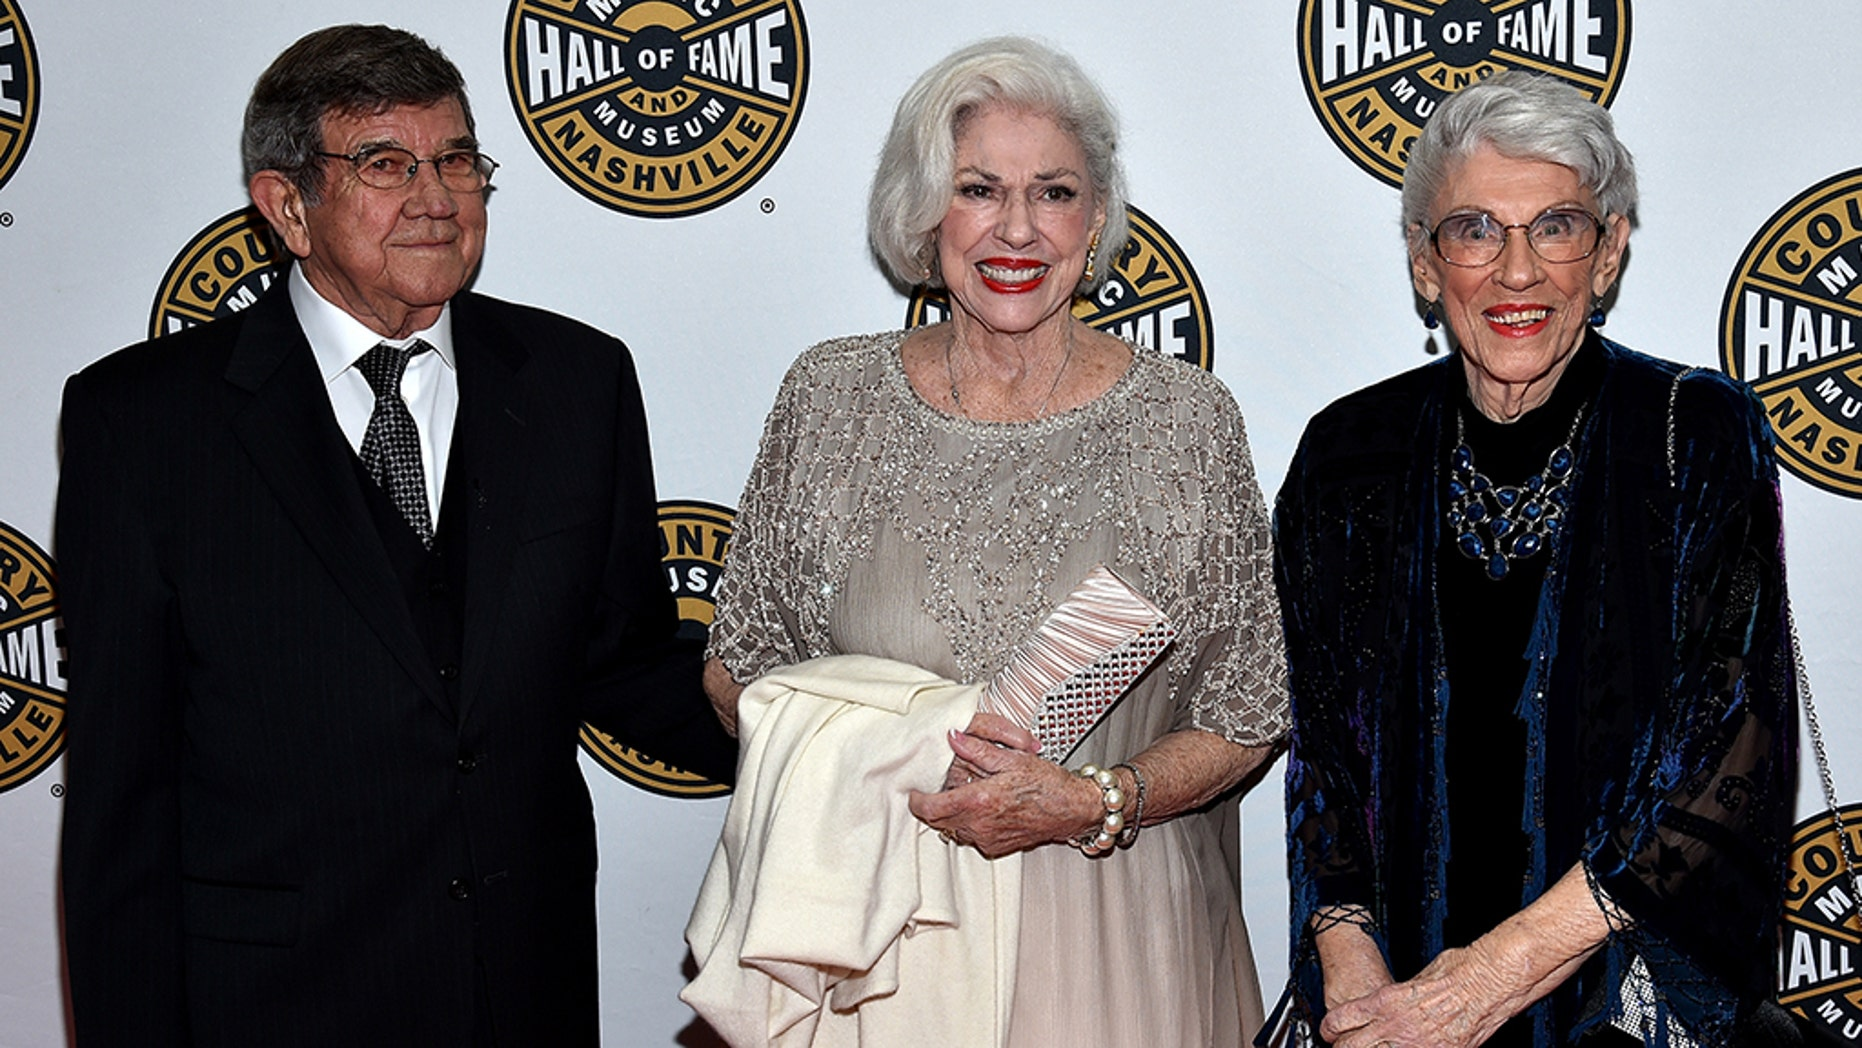 From l-r: Bonnie Brown, Maxine Brown and guest attend The Country Music Hall of Fame 2015 Medallion Ceremony at the Country Music Hall of Fame and Museum on October 25, 2015 in Nashville, Tennessee. (Photo by John Shearer/Getty Images for CMHOF)